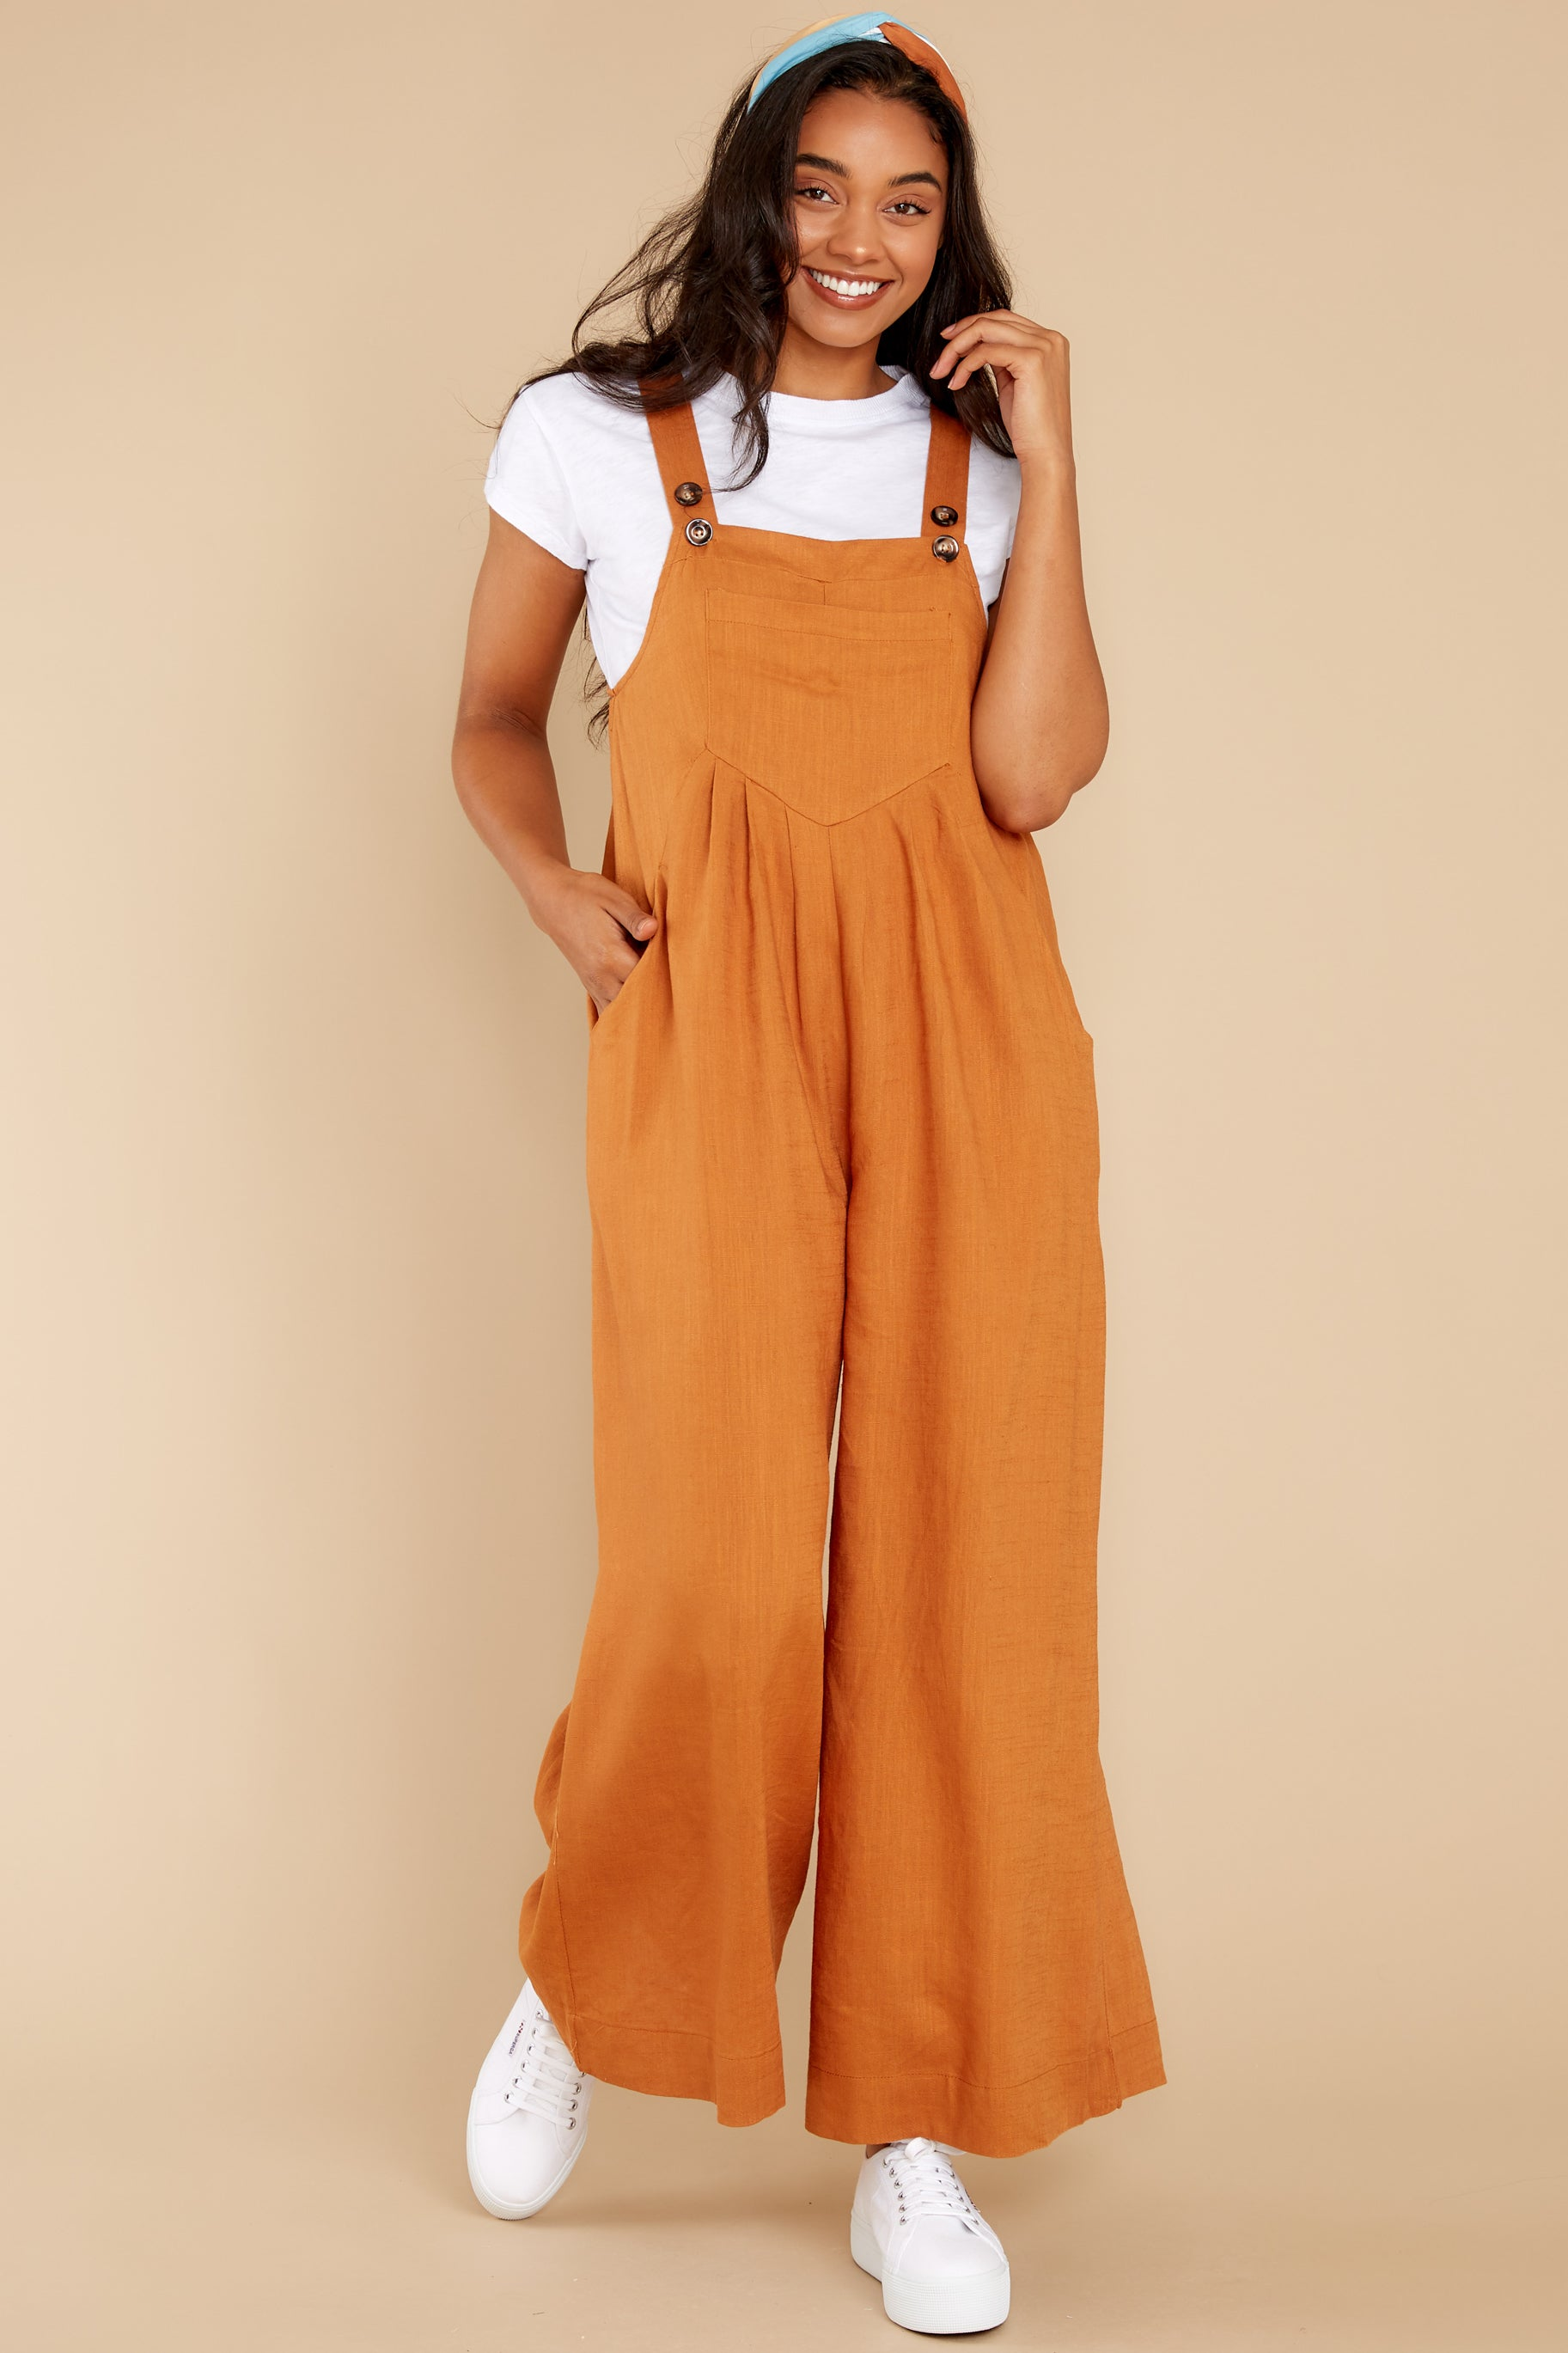 Vintage Overalls 1910s -1950s History & Shop Overalls In It To Win It Butterscotch Jumpsuit Brown $50.00 AT vintagedancer.com